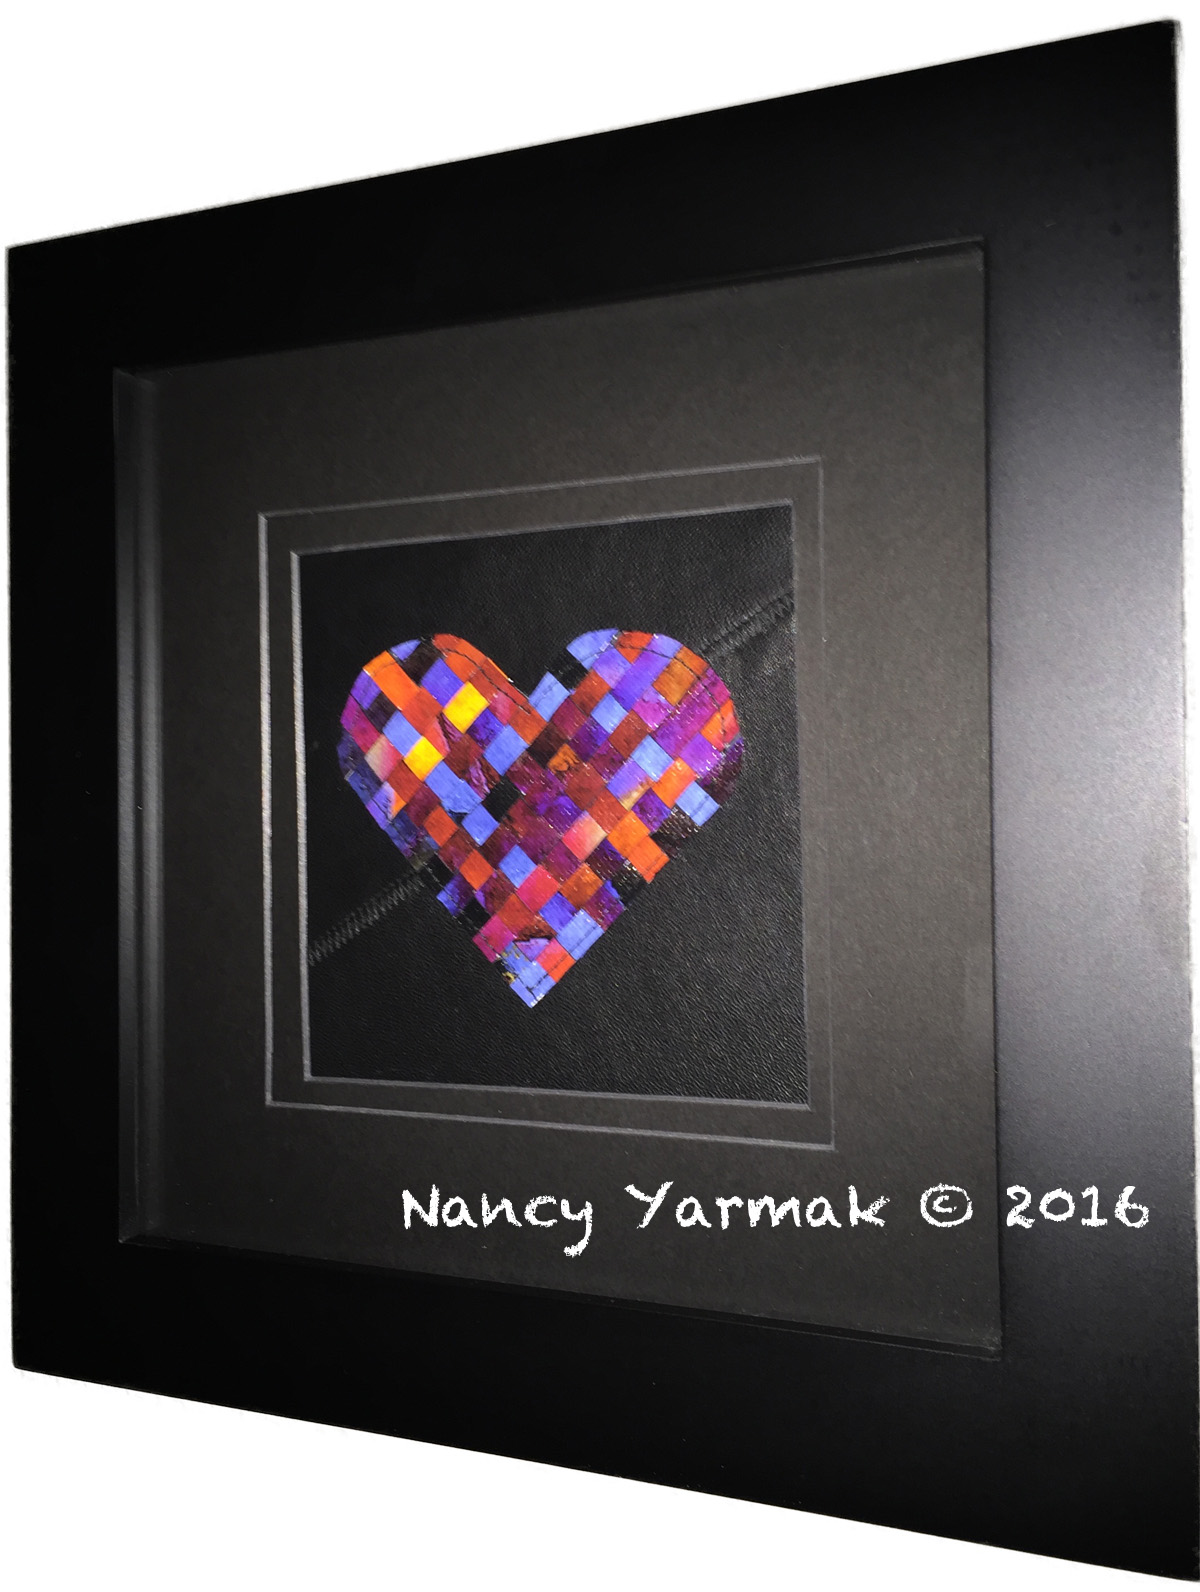 Small Woven Heart-Nancy Yarmak